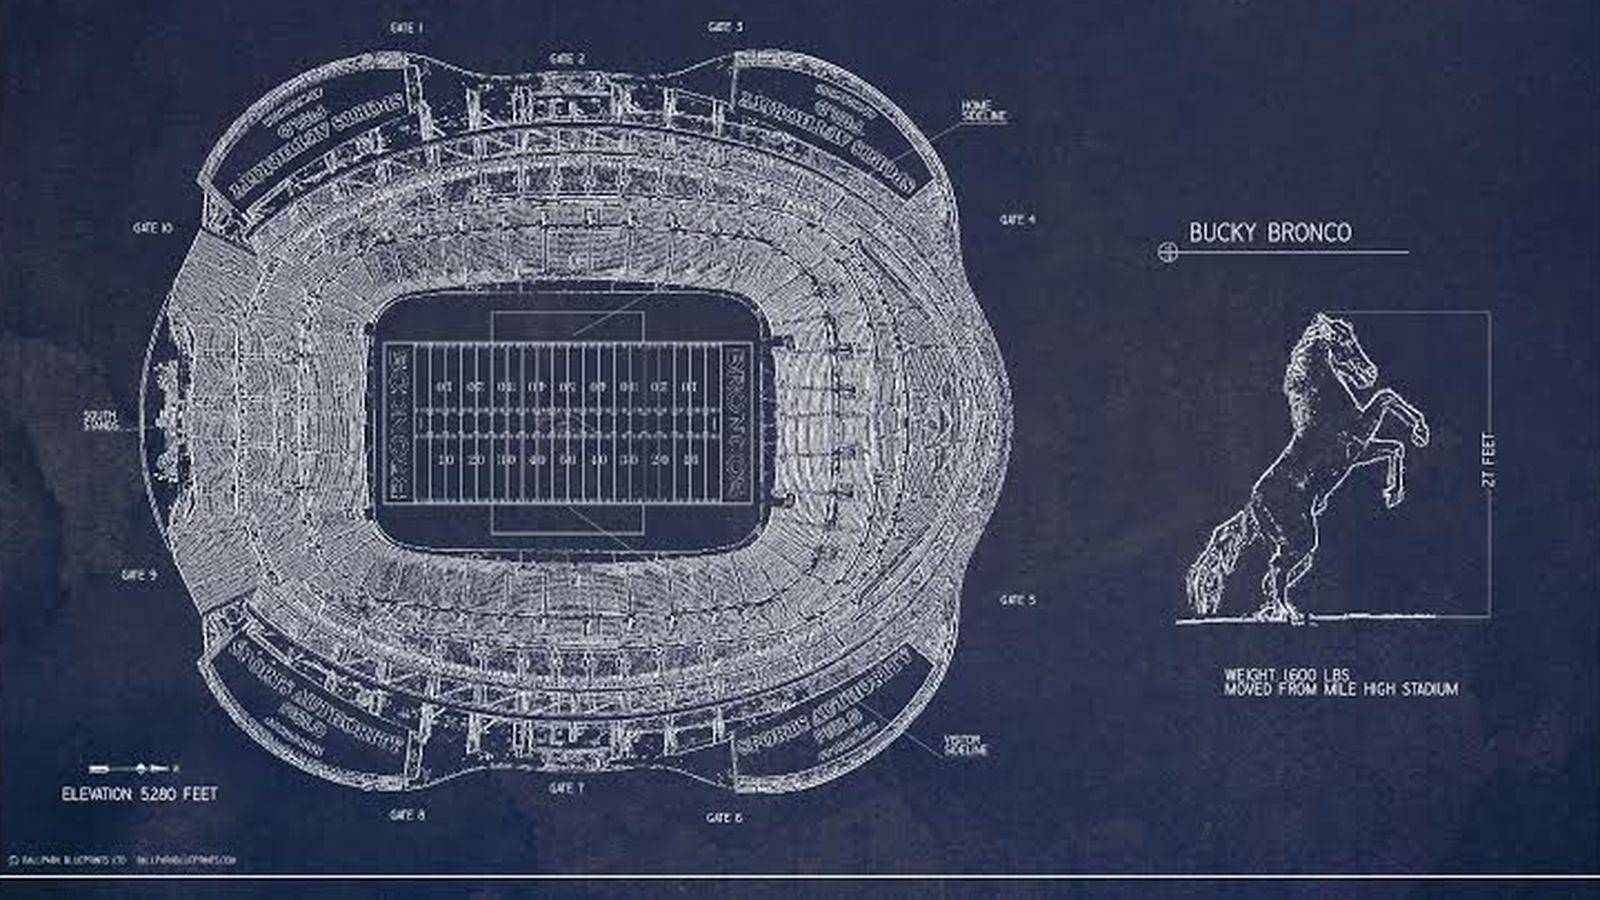 This mile high stadium blueprint poster is pretty awesome mile this mile high stadium blueprint poster is pretty awesome mile high report malvernweather Gallery